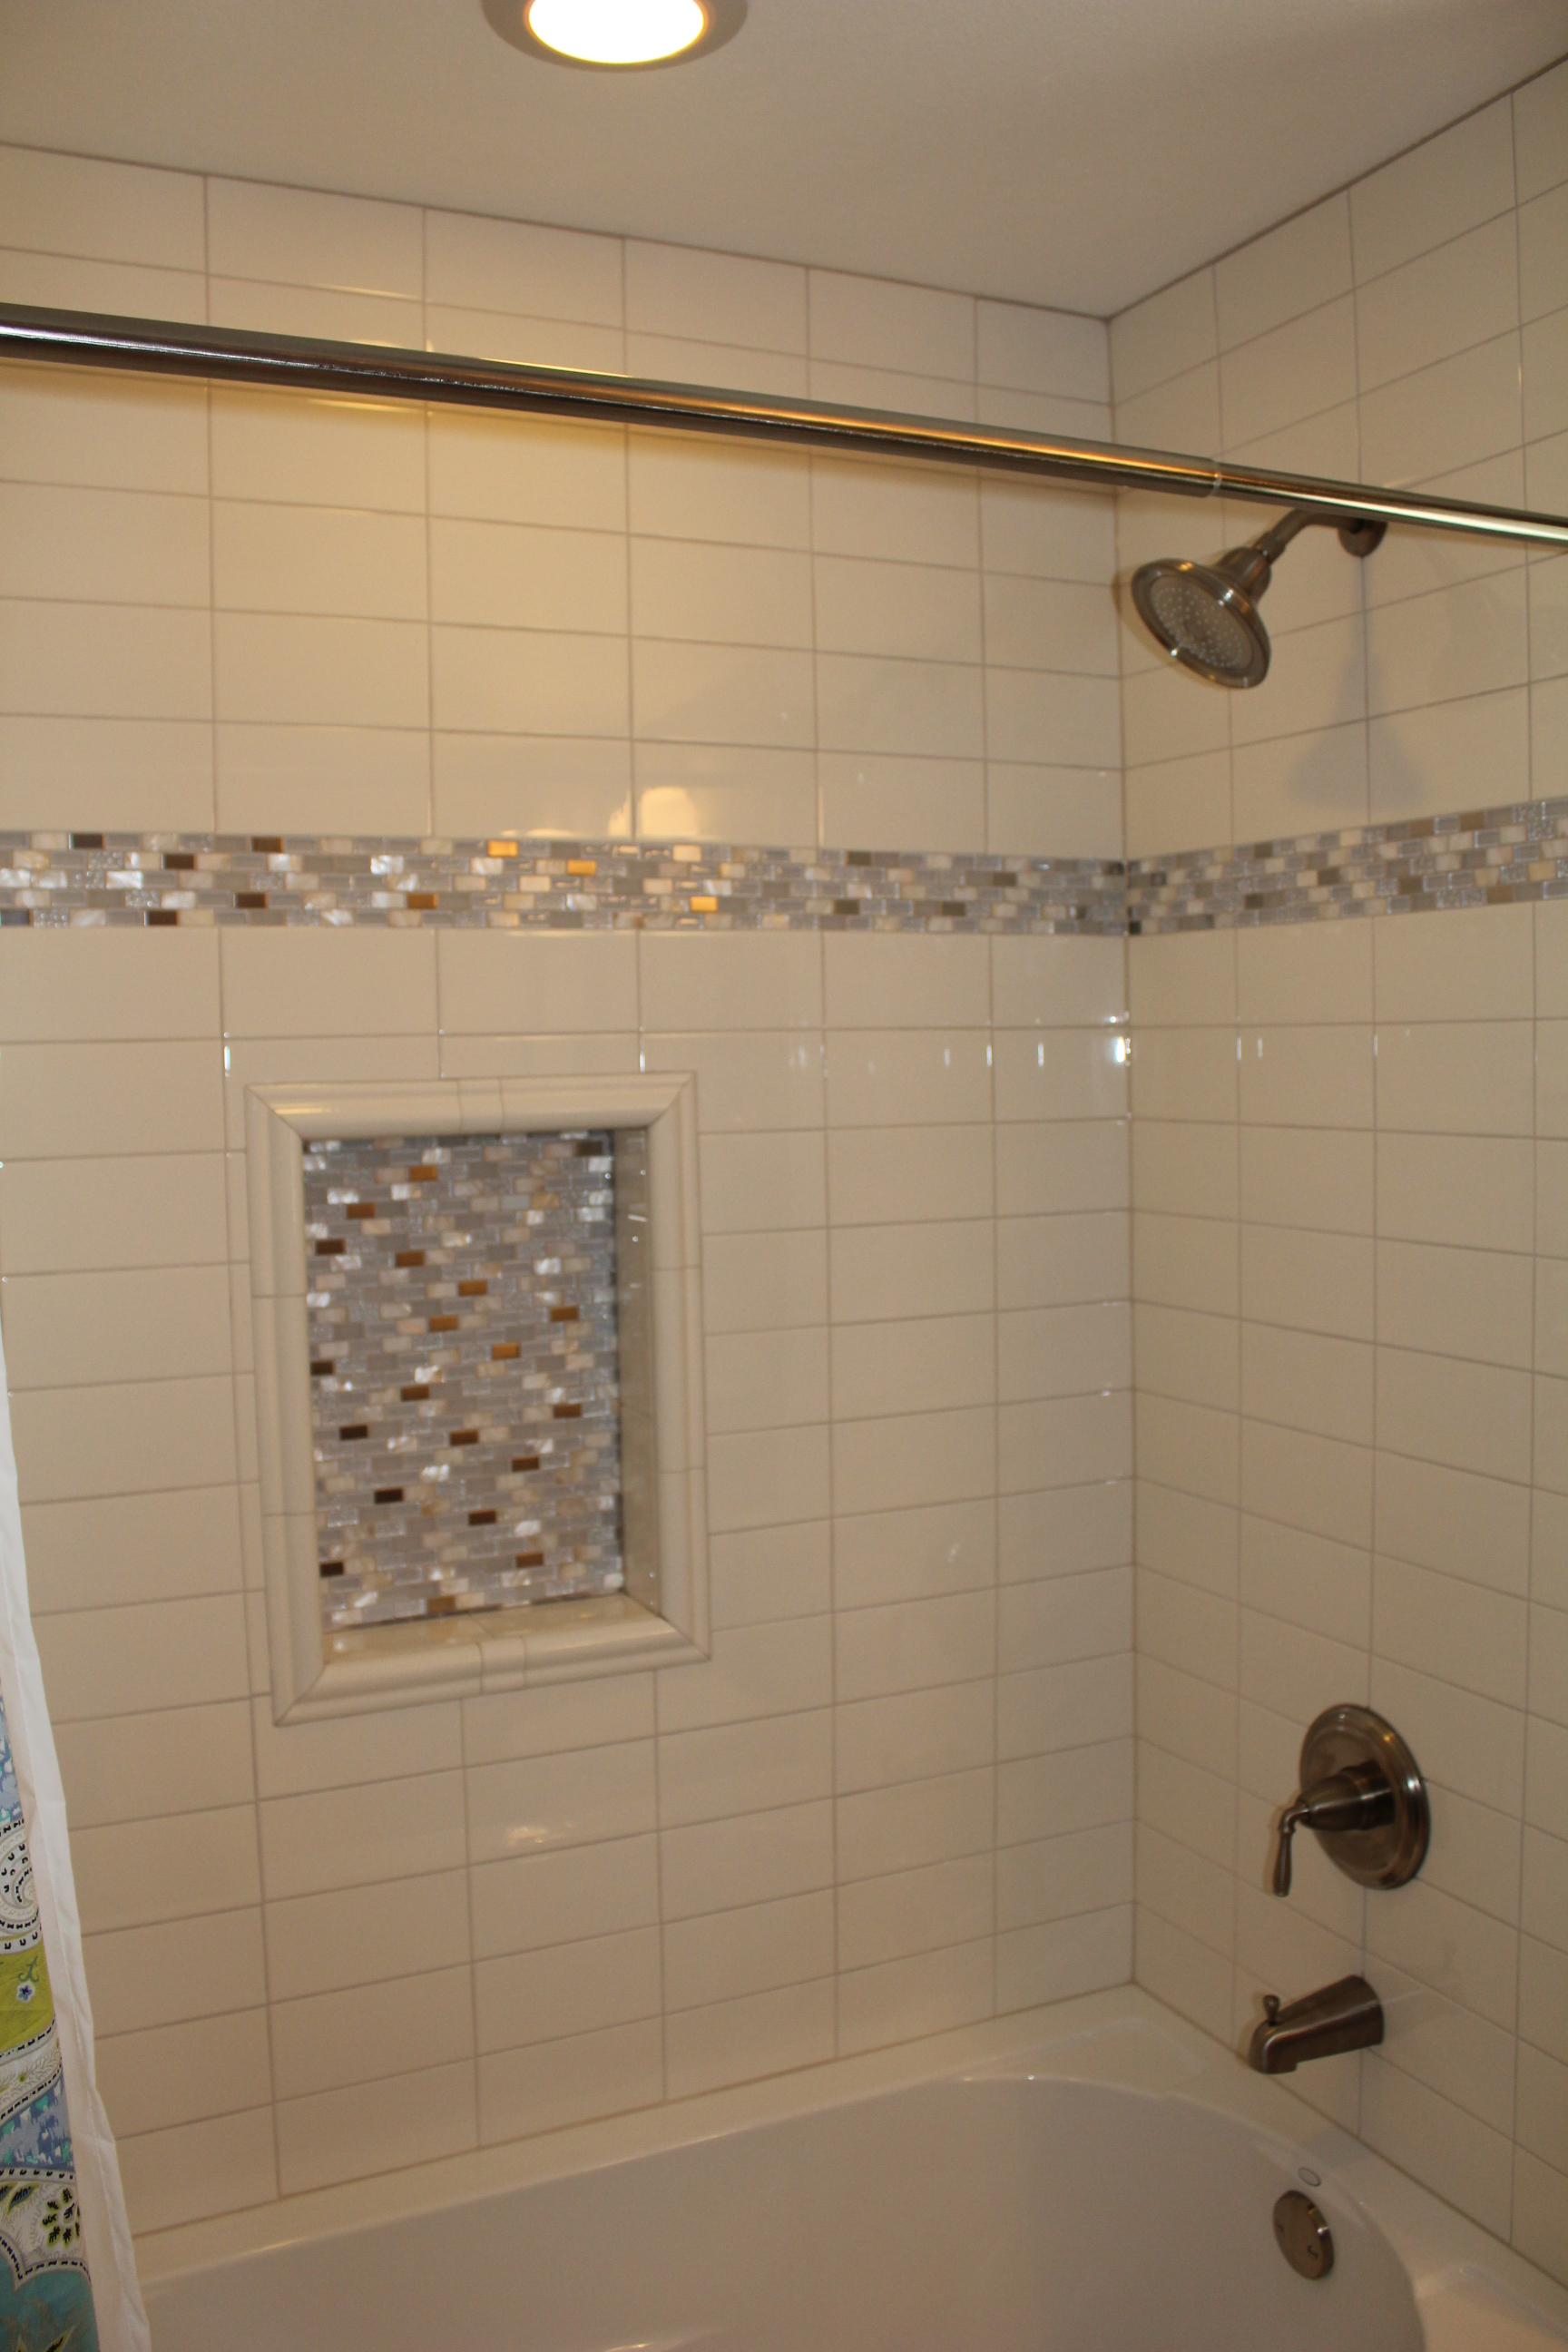 Subway tile in shower bathroom tile nyc bathroom trends for Subway tiles for bathroom shower